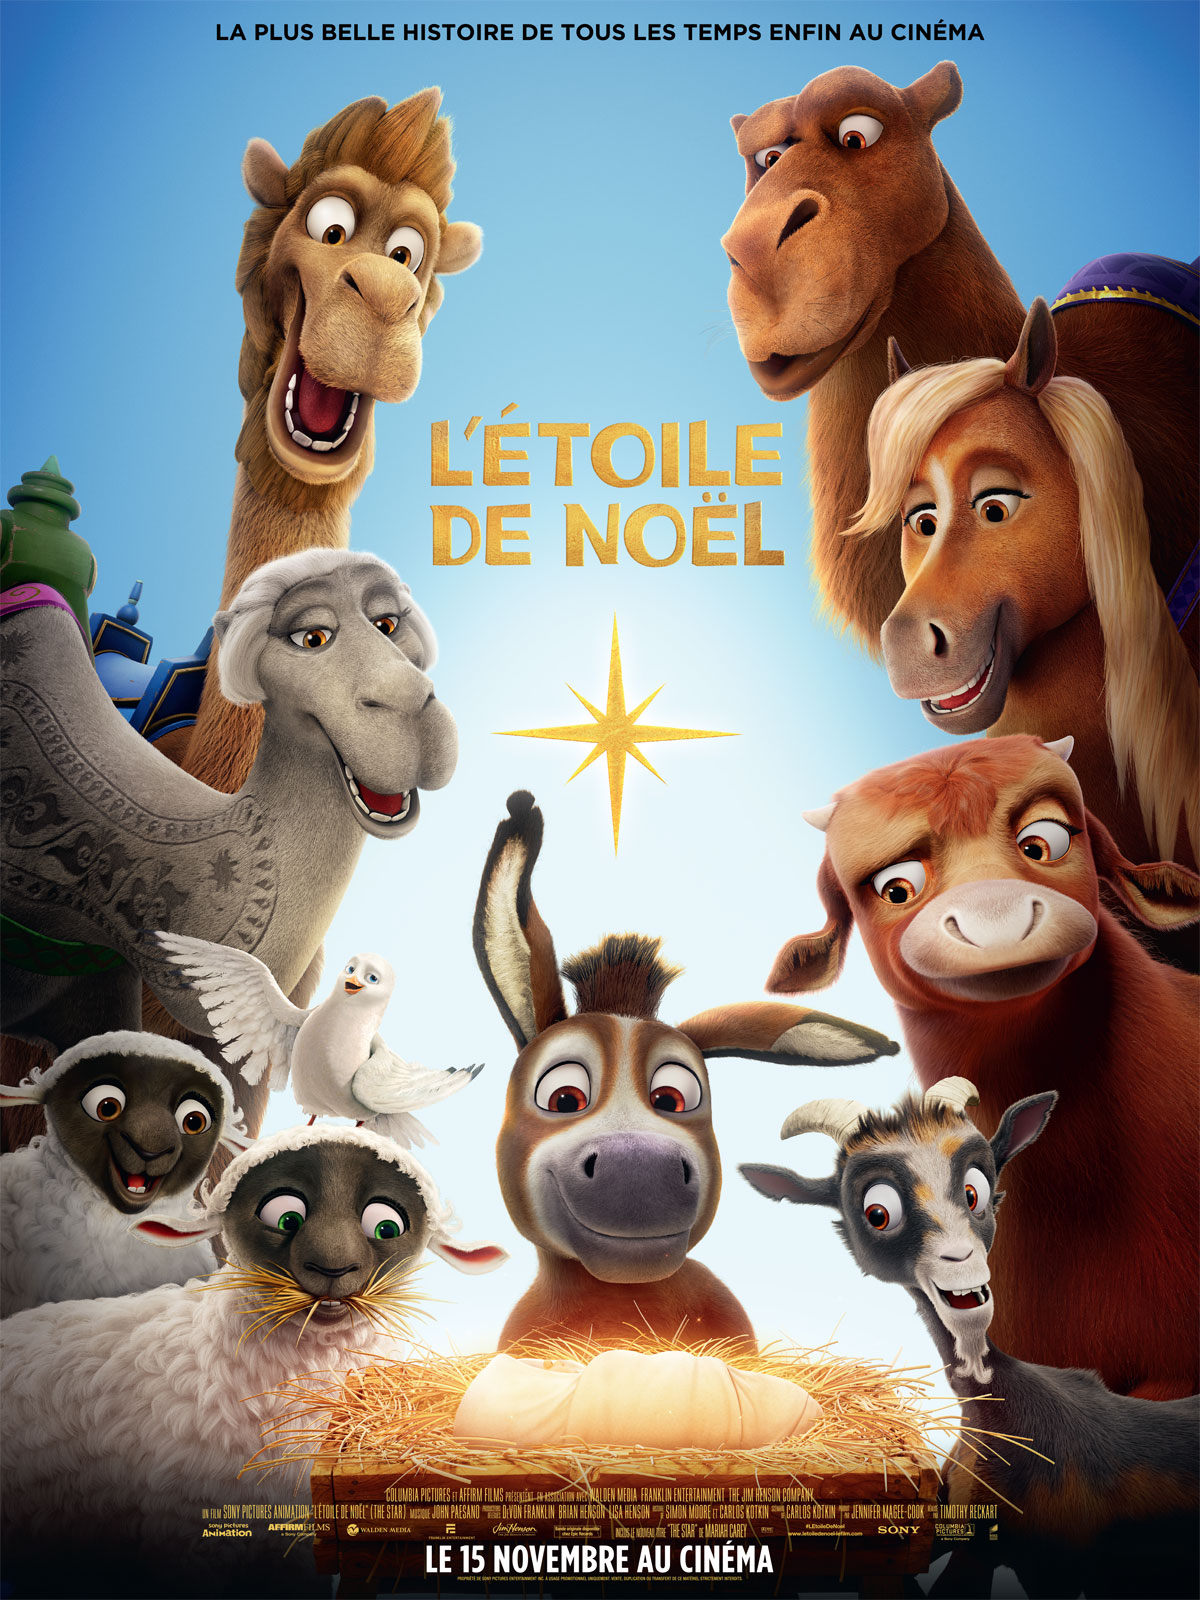 film de noel 2018 au cinema L'Etoile de Noël   film 2017   AlloCiné film de noel 2018 au cinema